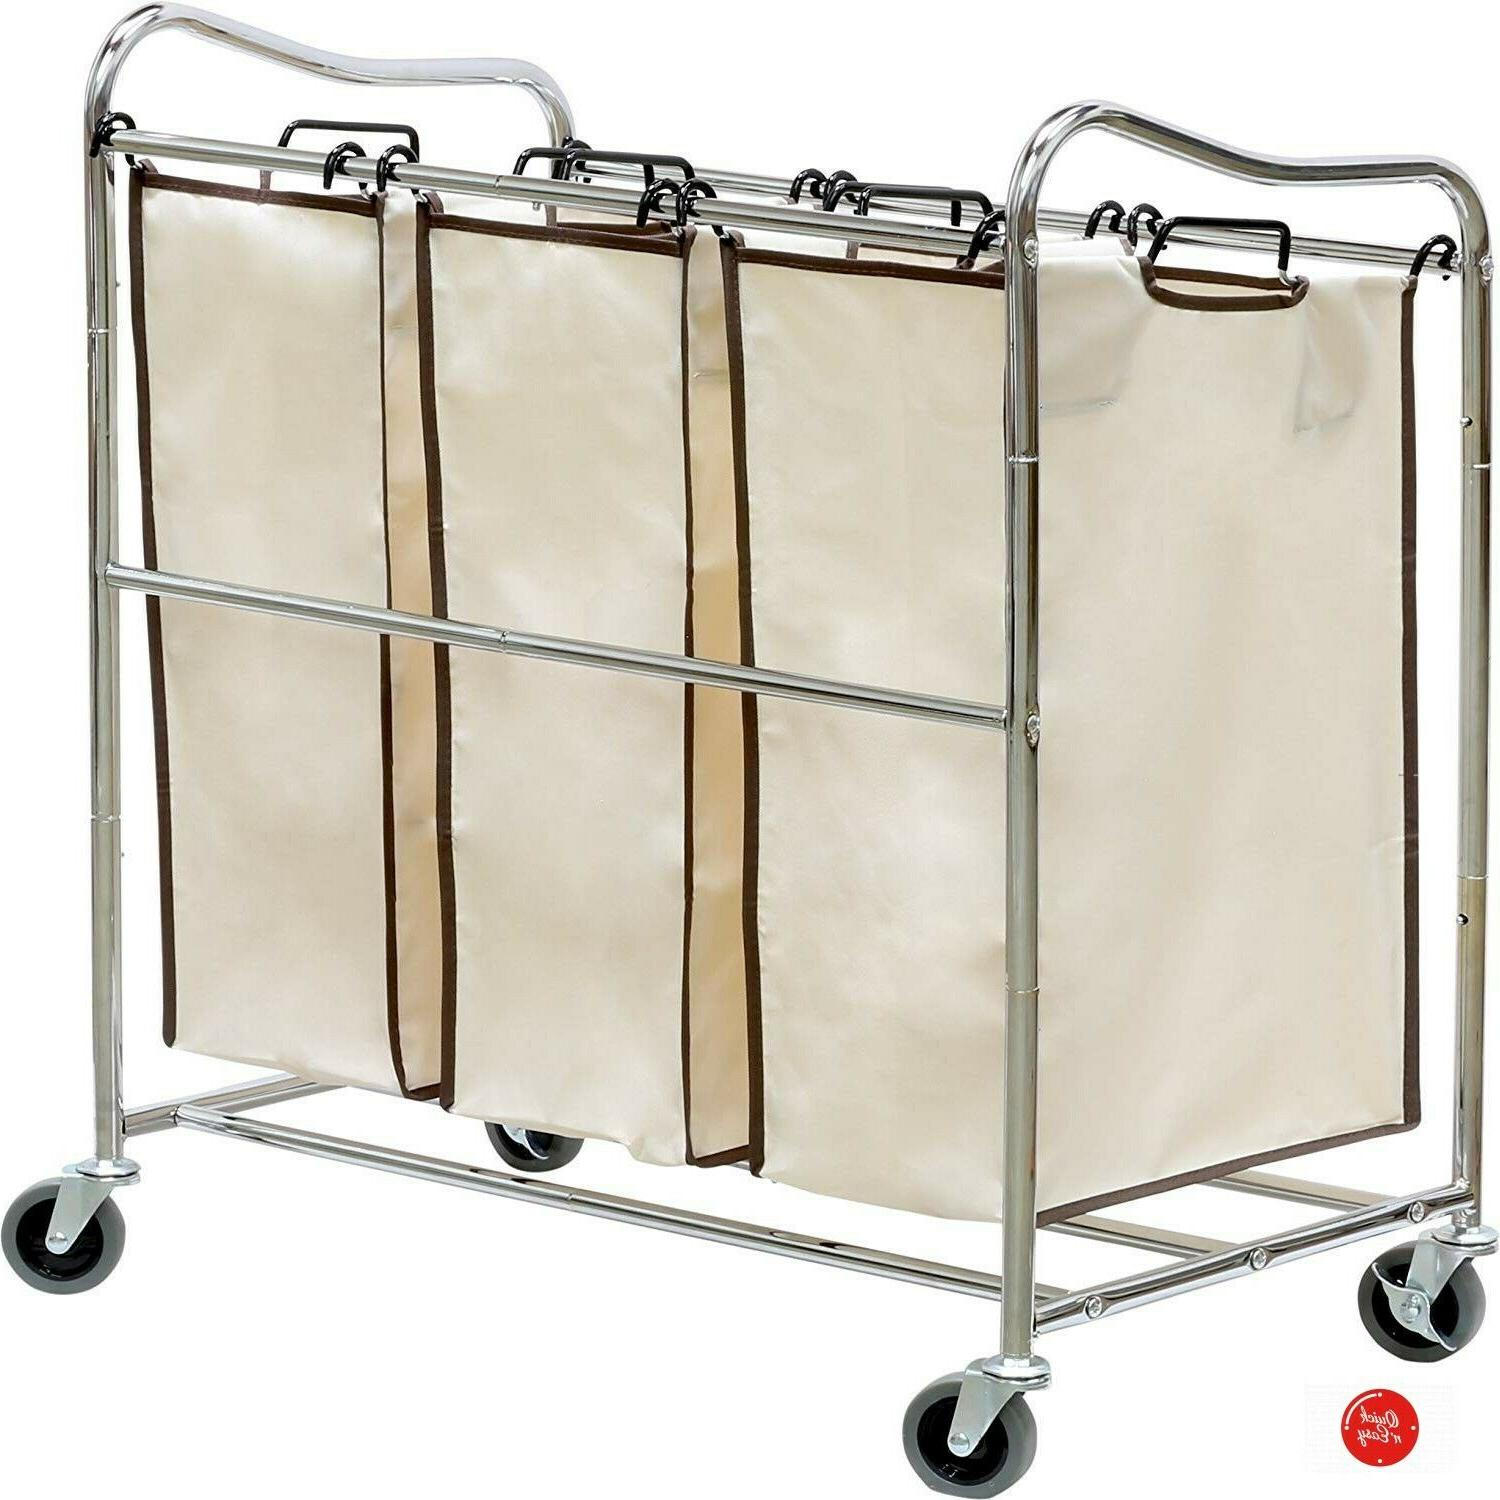 Laundry Hamper With 3 Sorter Compartment Basket Rolling On Large NEW